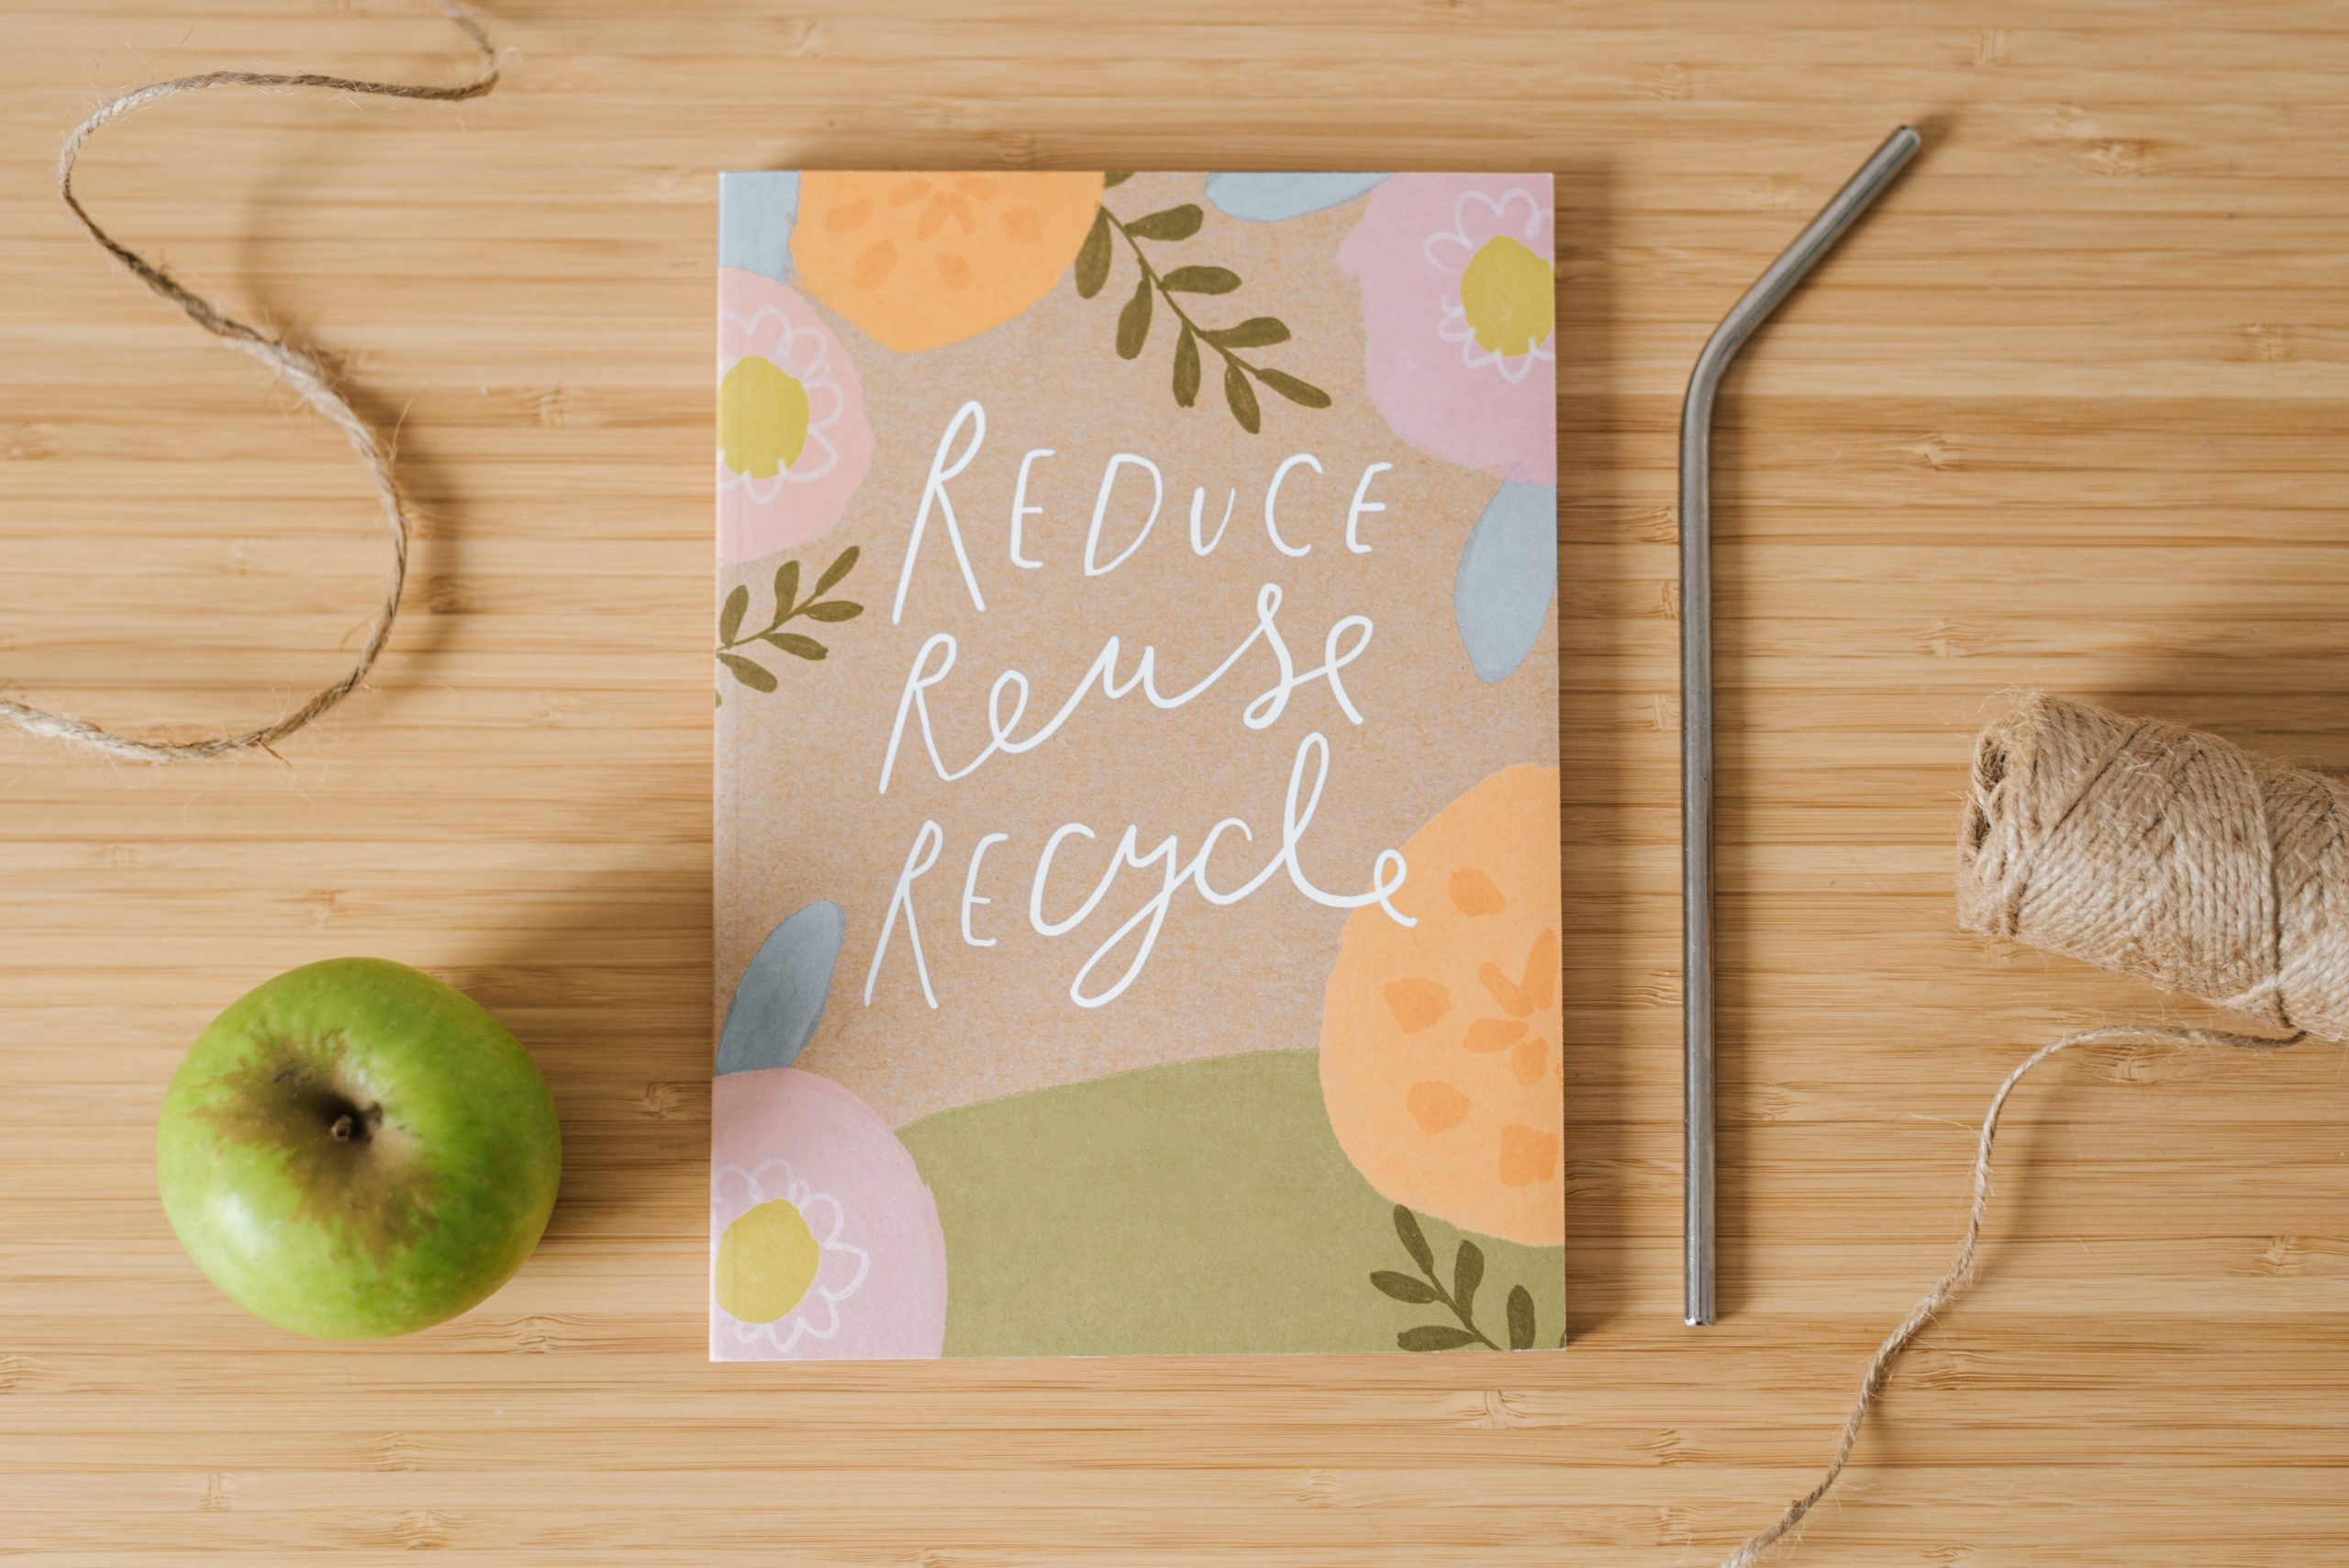 common items that can be reused and a notebook that says reduce, reuse, recycle